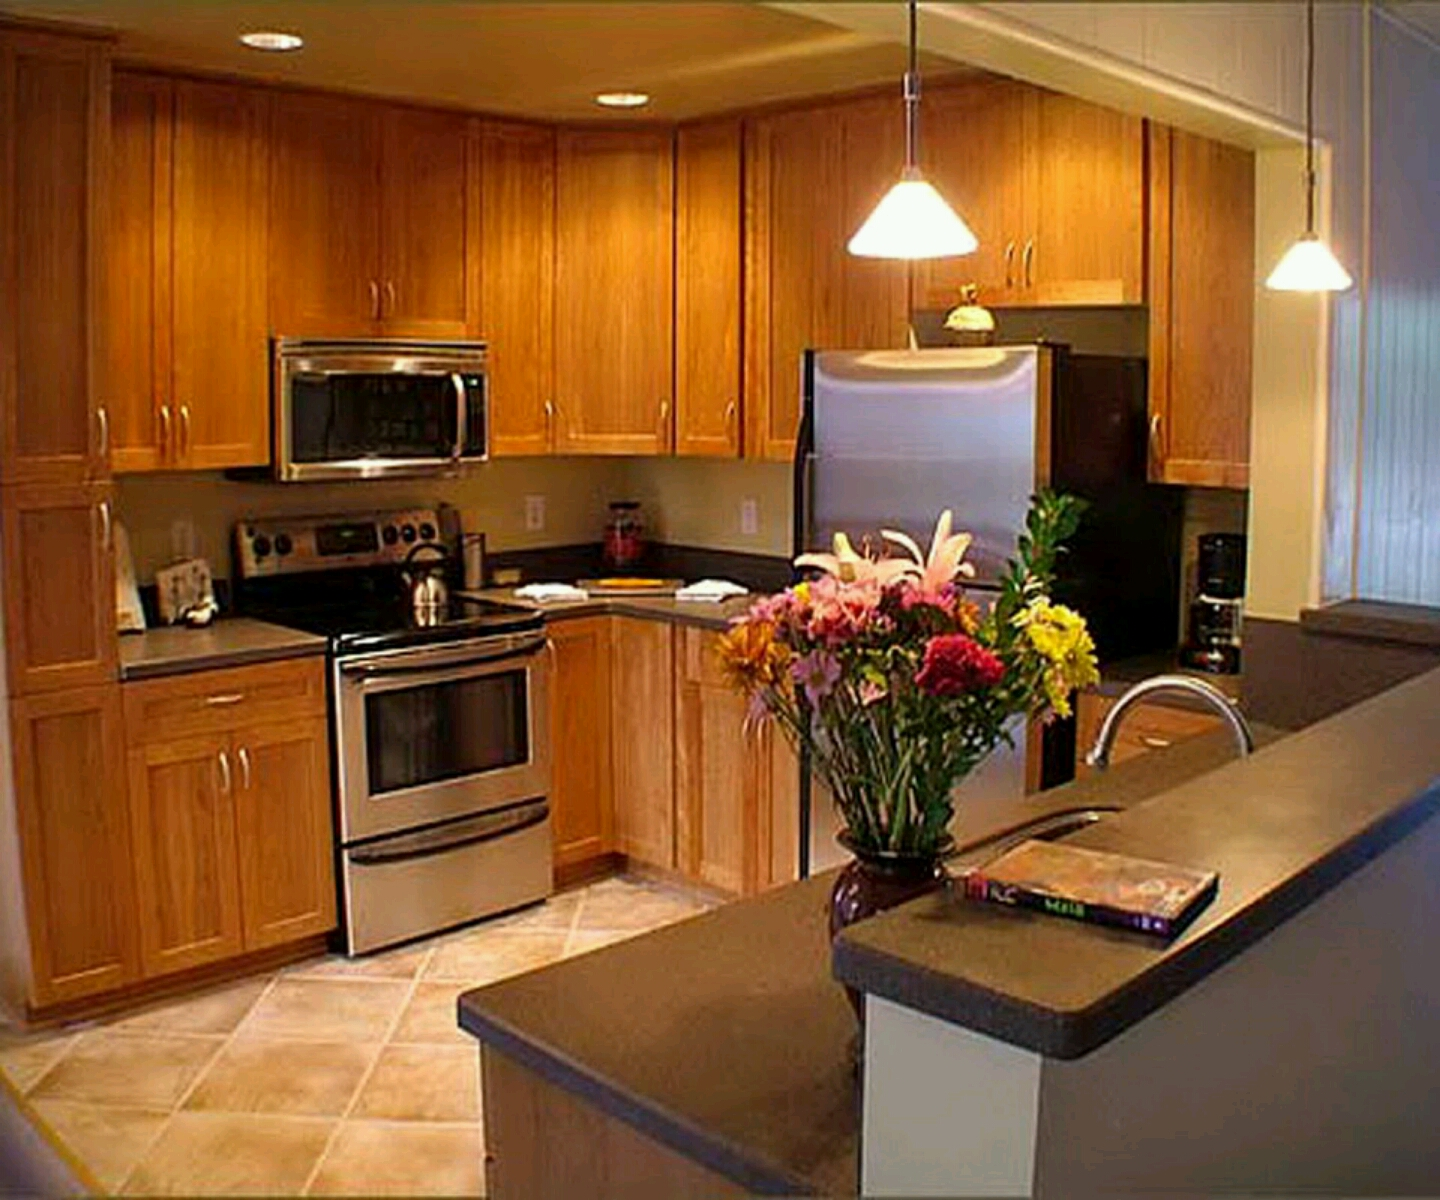 Contemporary wooden kitchen cabinets bill house plans for Wooden kitchen cupboards